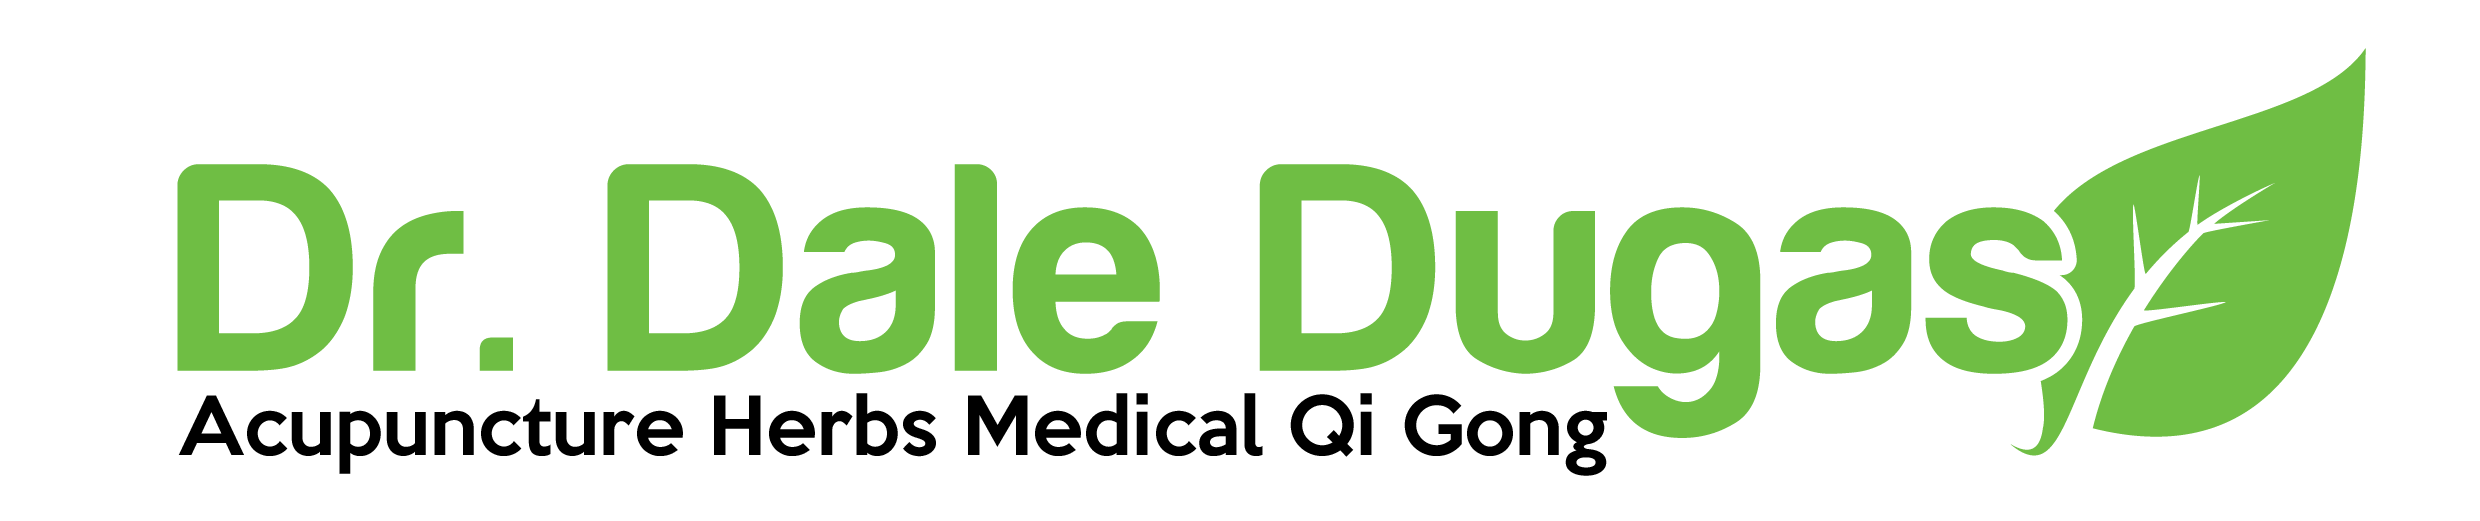 Dr. Dale Dugas Acupuncture and Chinese Medicin